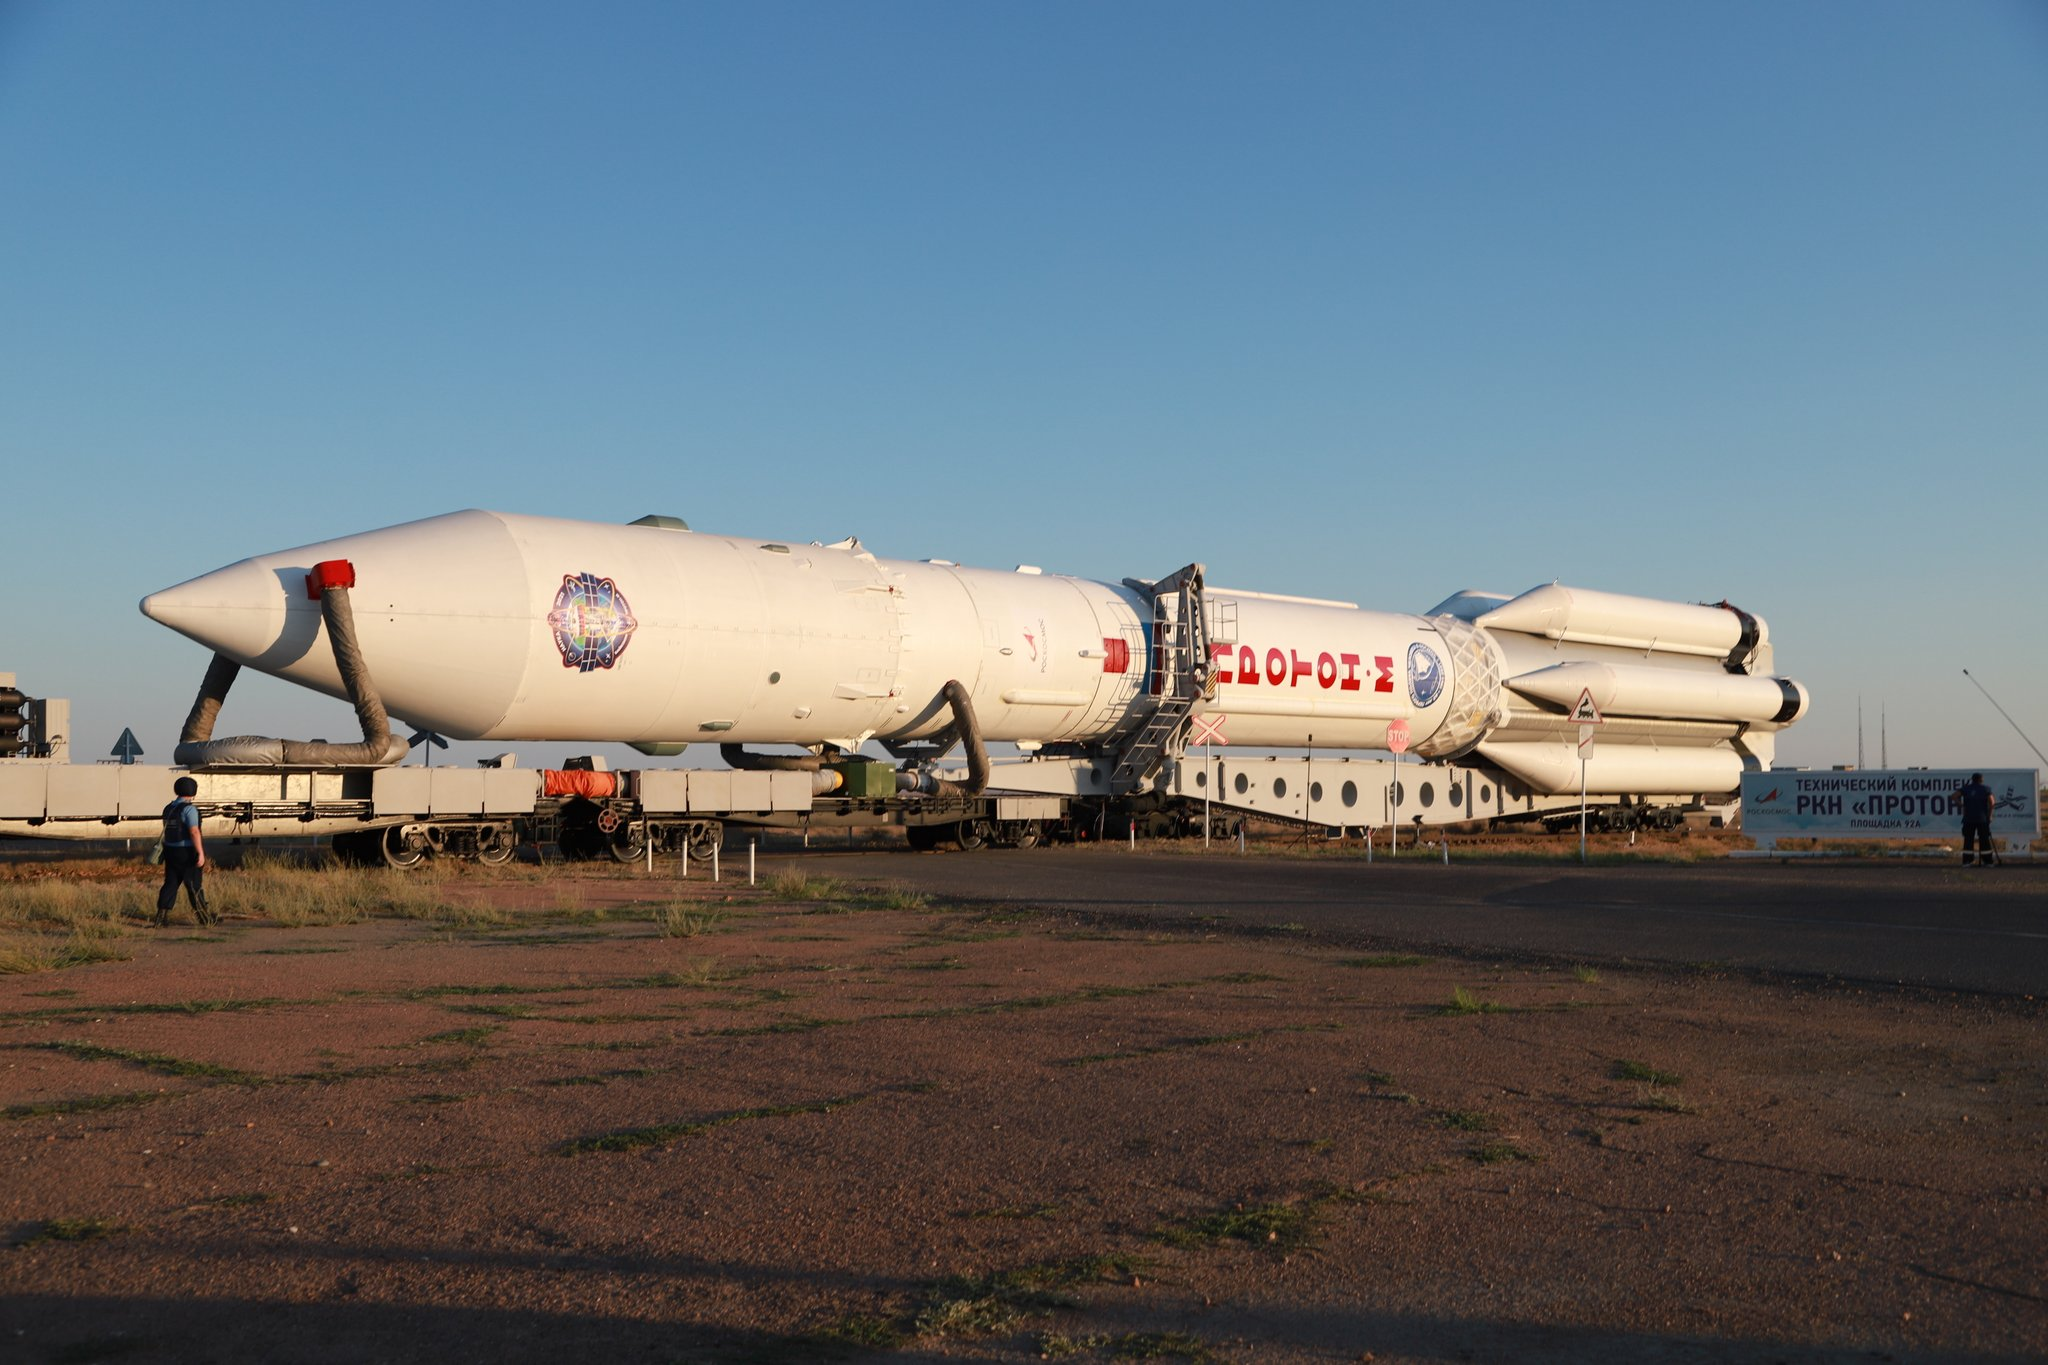 2021-nauka-rolled-out-launch-pad.jpg